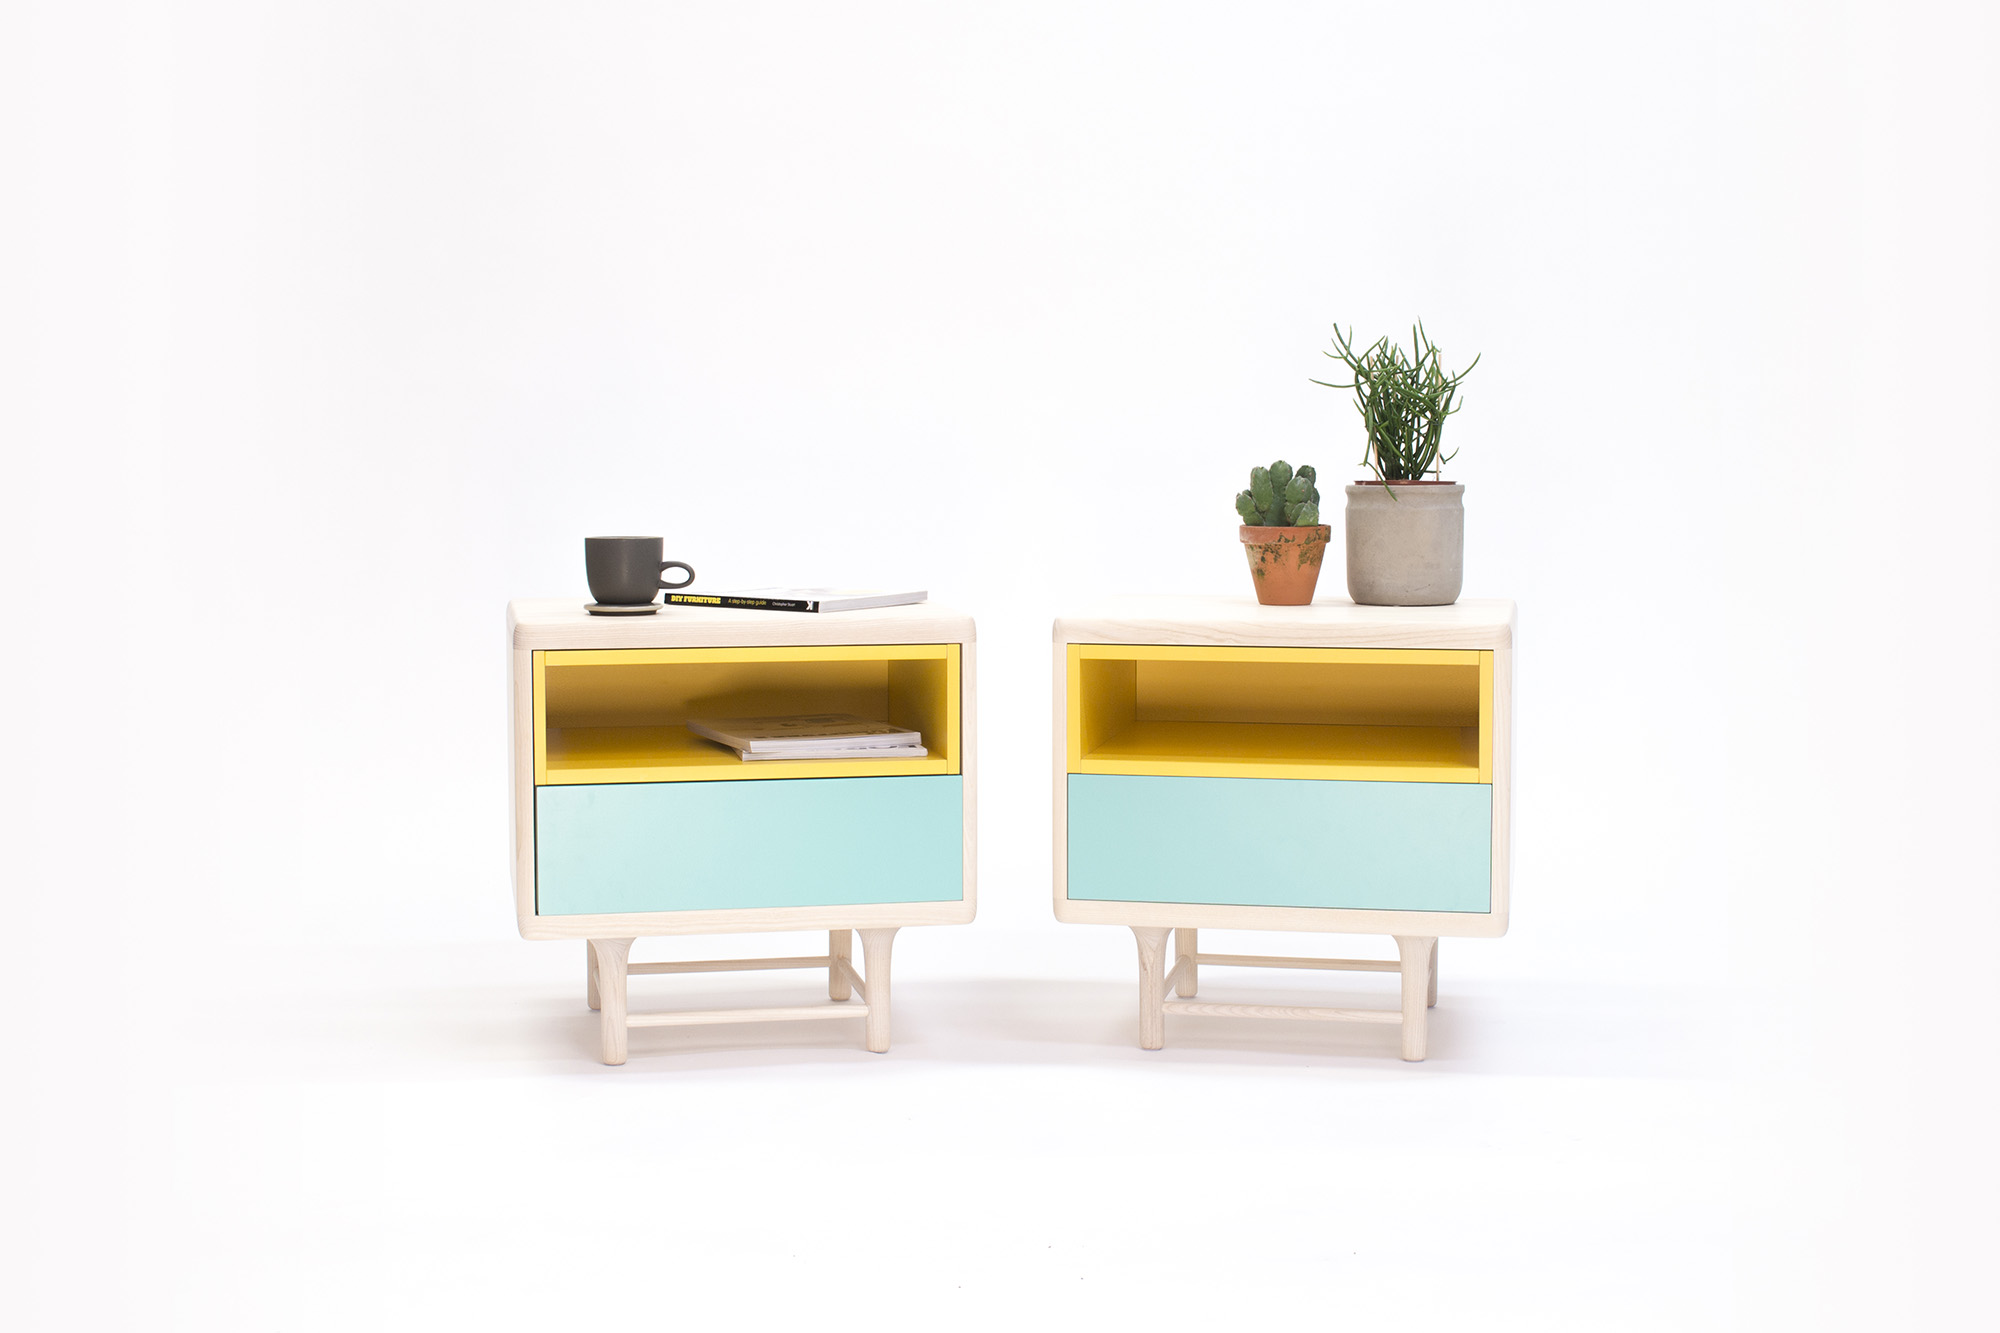 Minimal scandinavian furniture by designer carlos jim nez for In design furniture